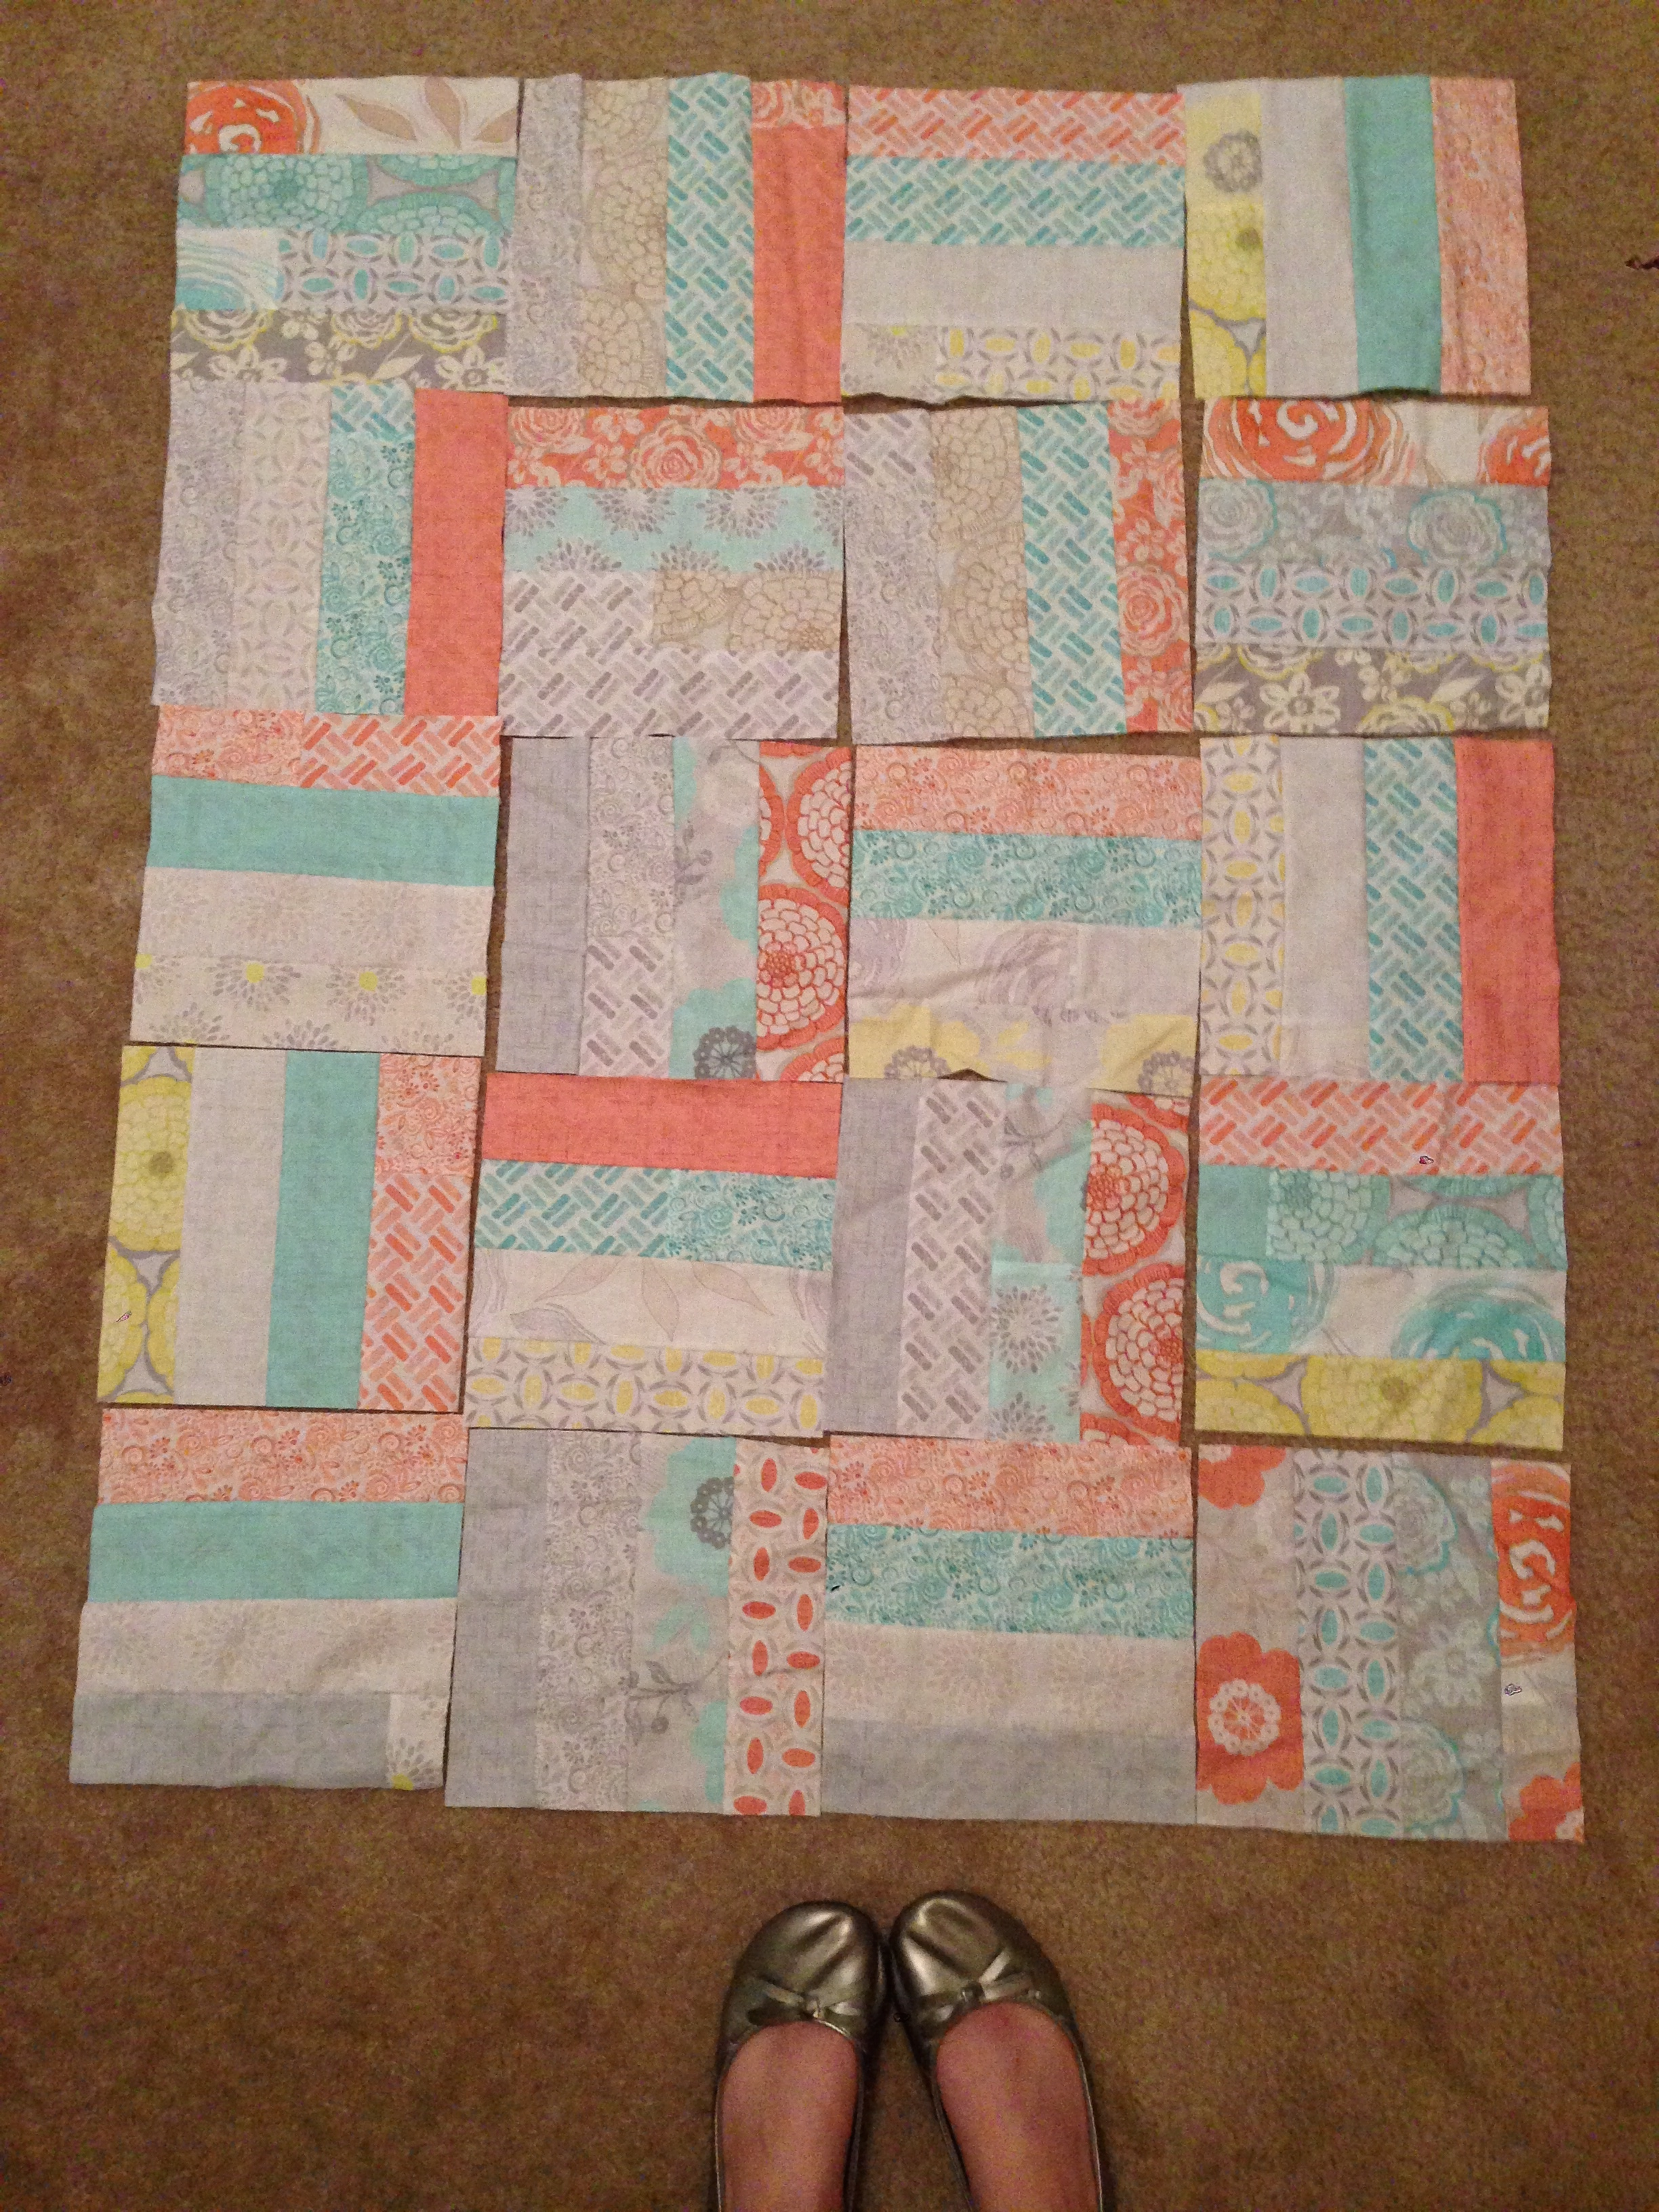 Rail Fence Quilt Patternfence Rail Star Quilt Pattern By Msqc Msqc